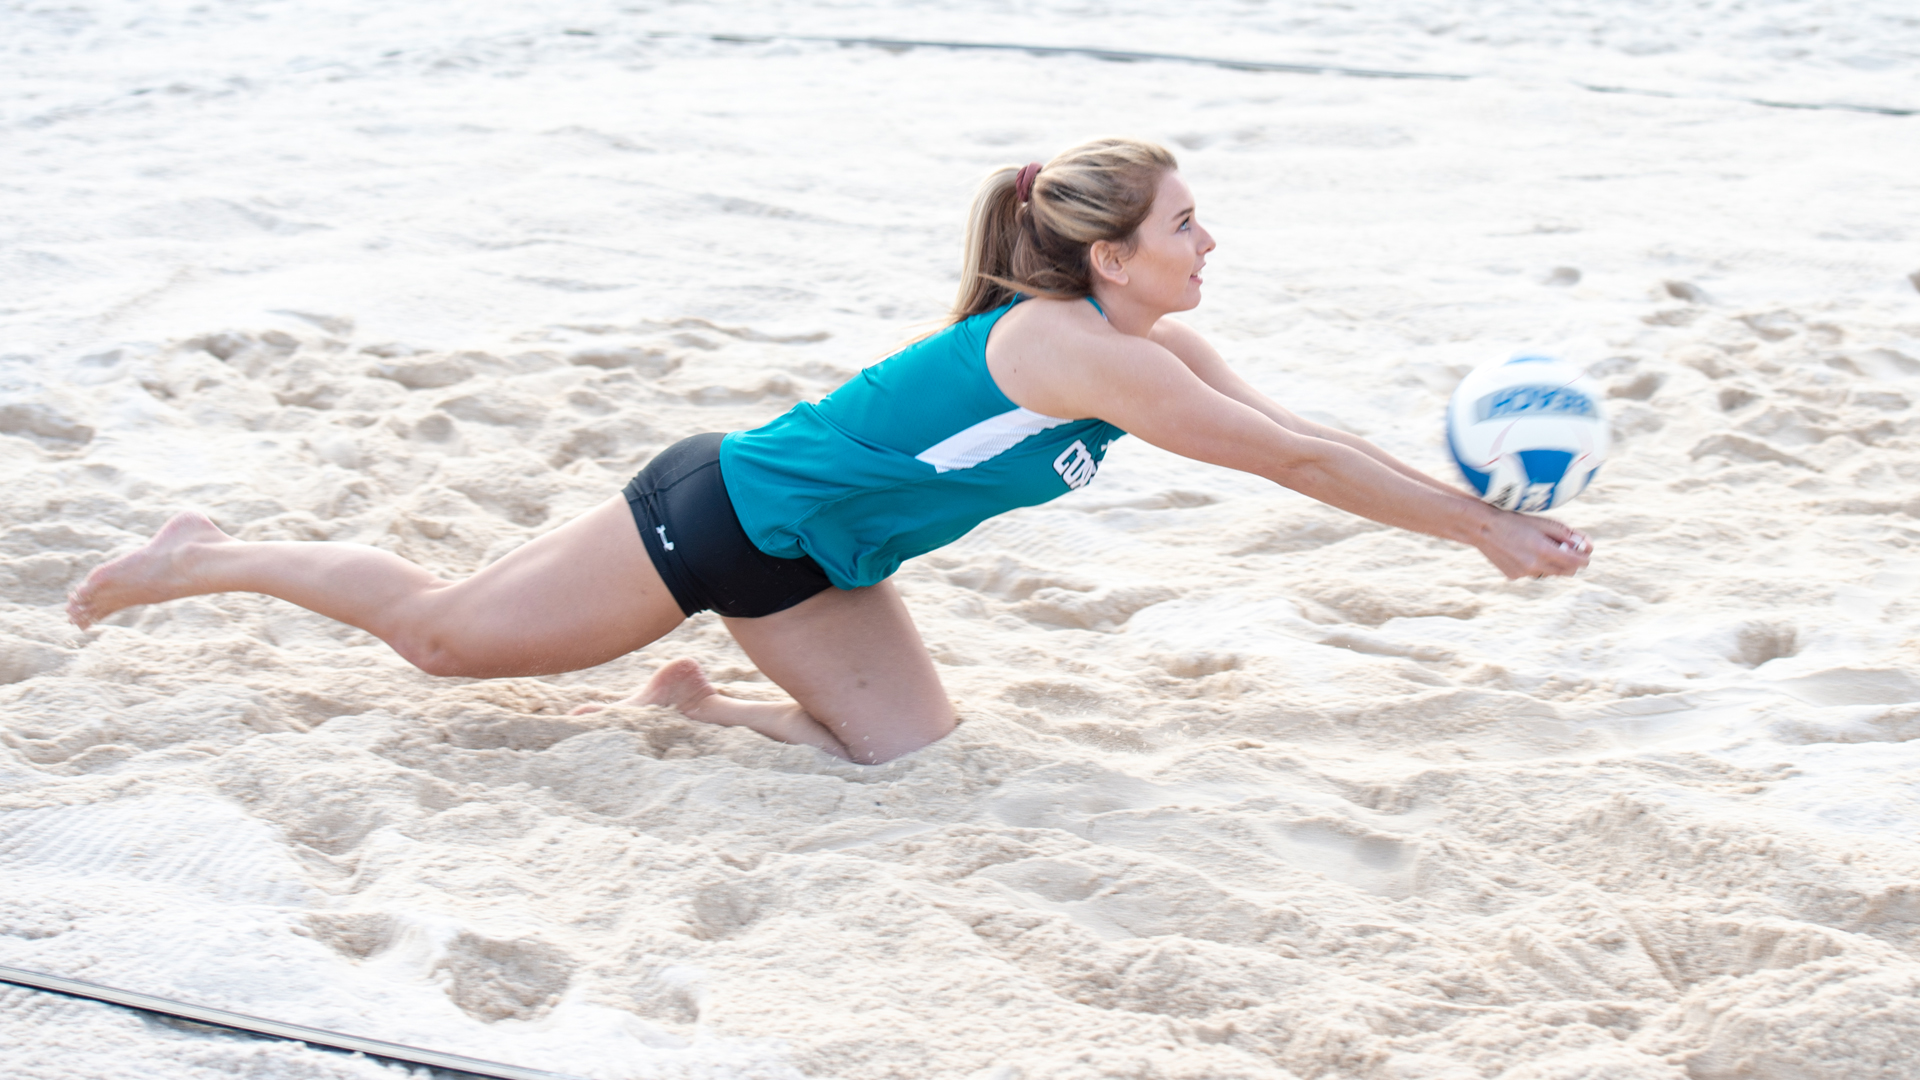 Lucy Campbell - Women's Beach Volleyball - Coastal Carolina